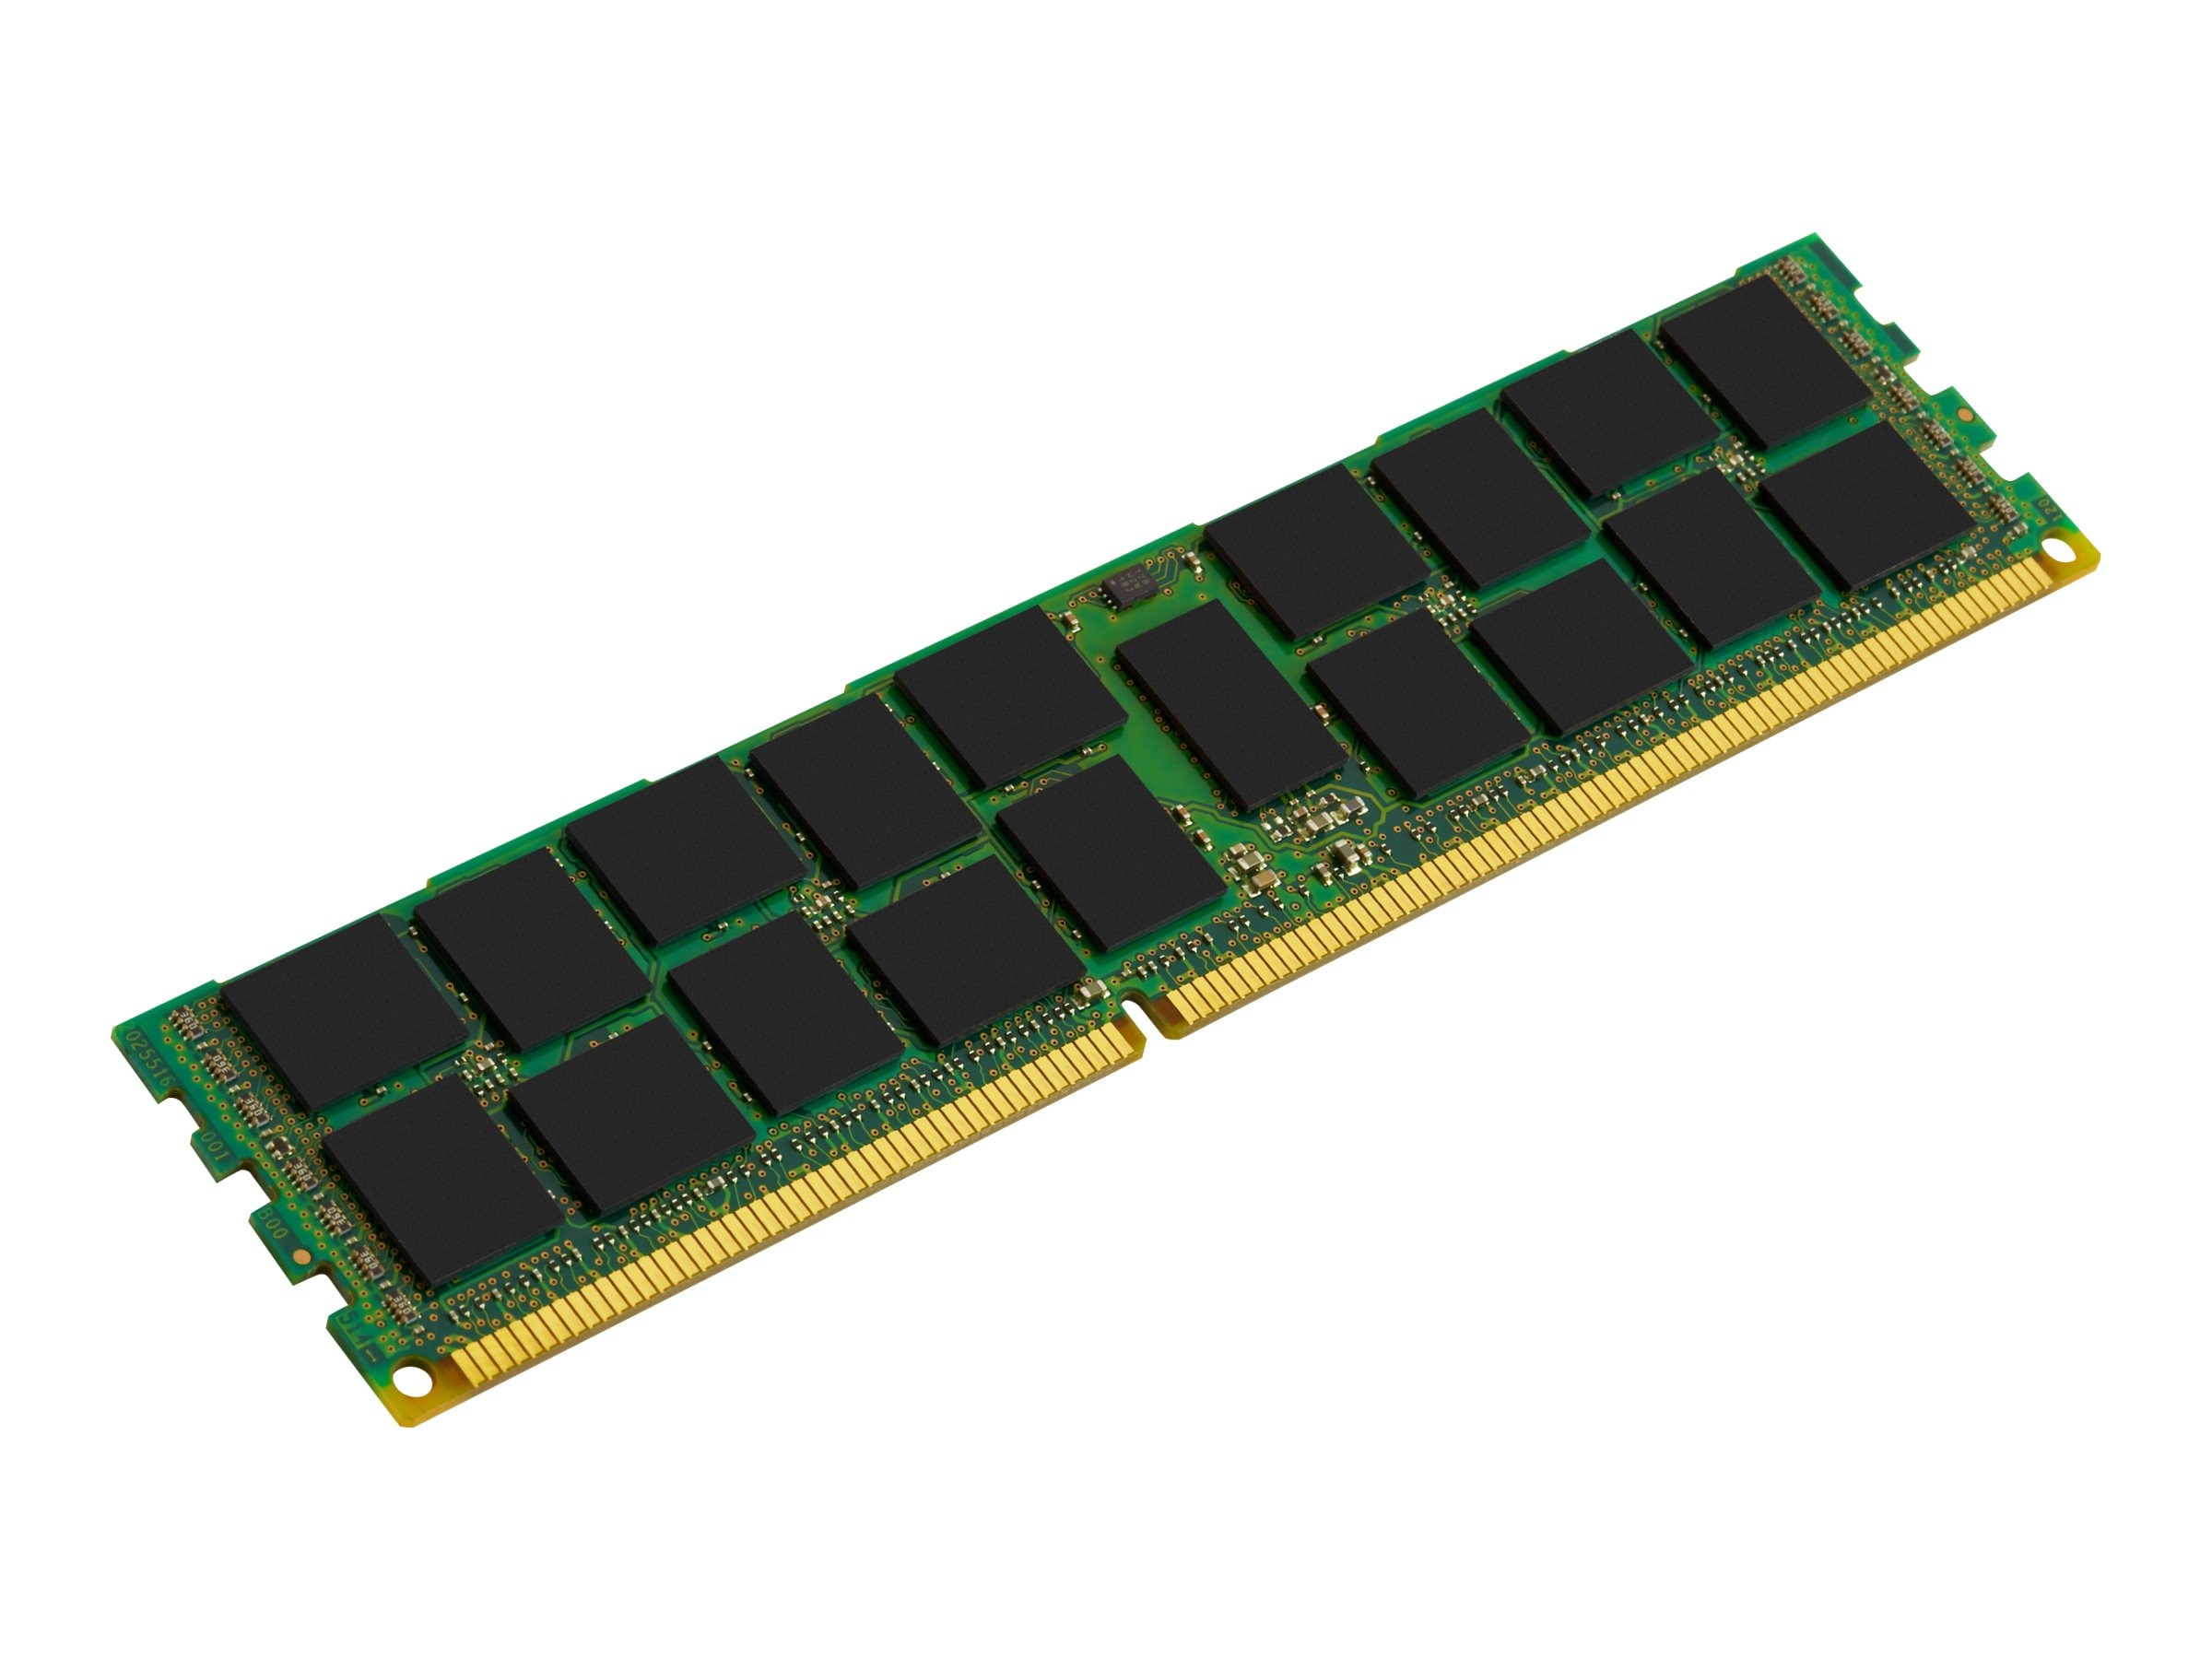 Kingston 16GB PC3-12800 DDR3 SDRAM Upgrade Module, KTD-PE316LV/16G, 16014669, Memory